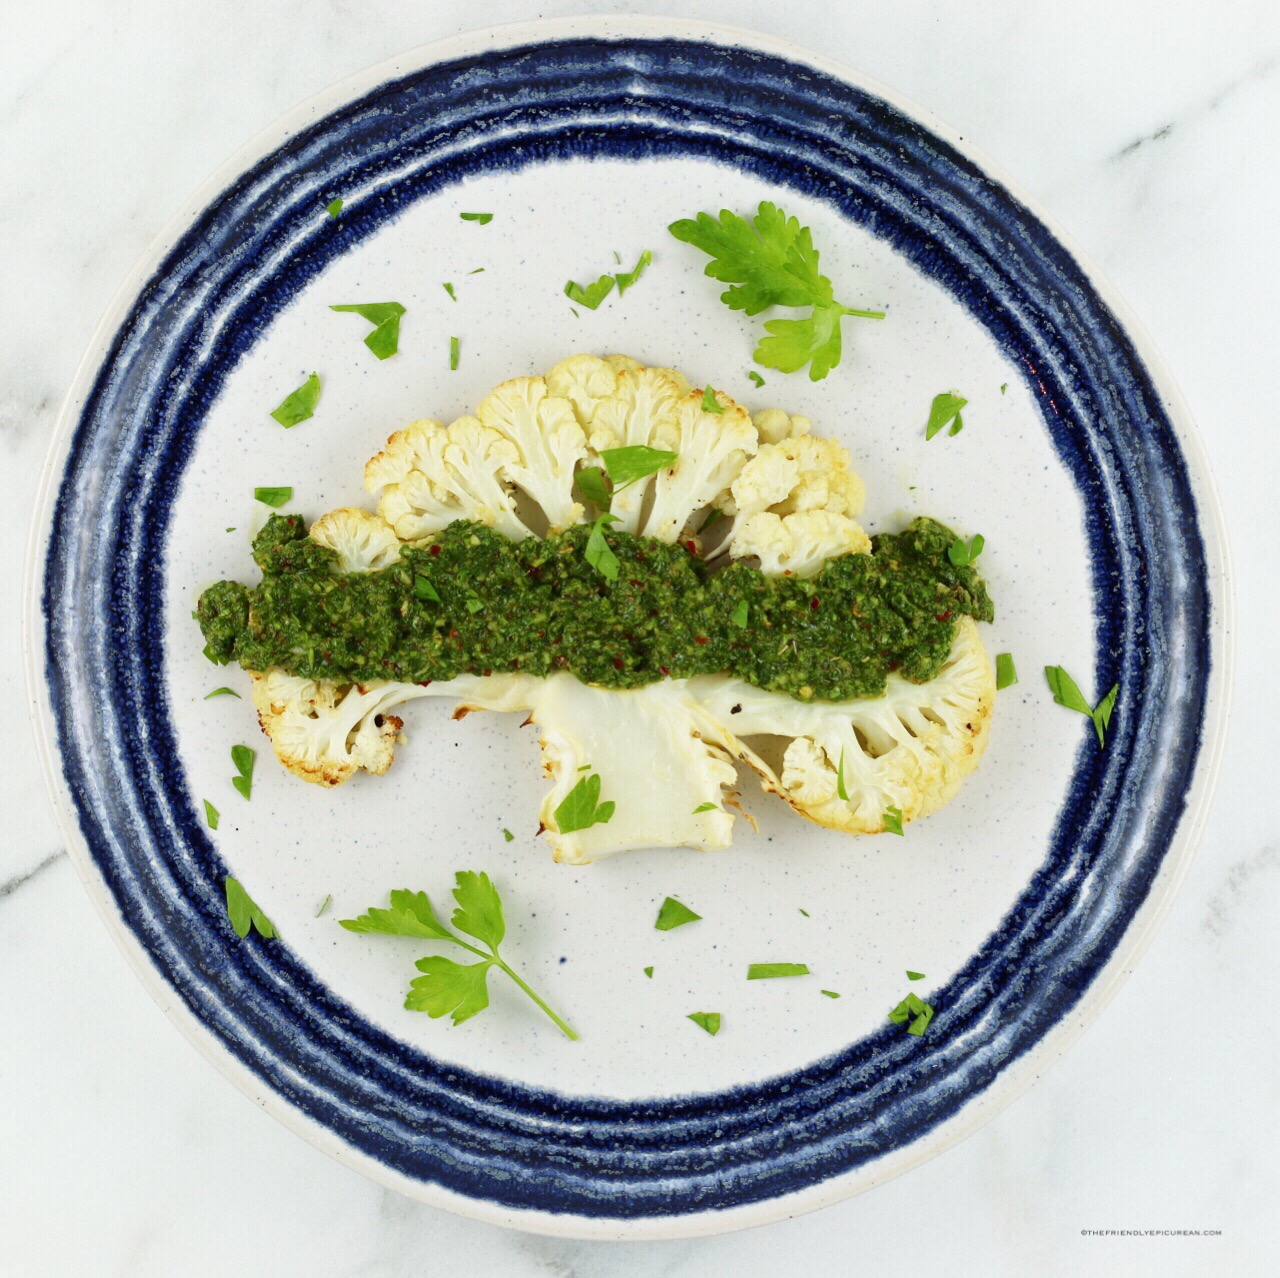 Cauliflower Steaks with Chimichurri Sauce